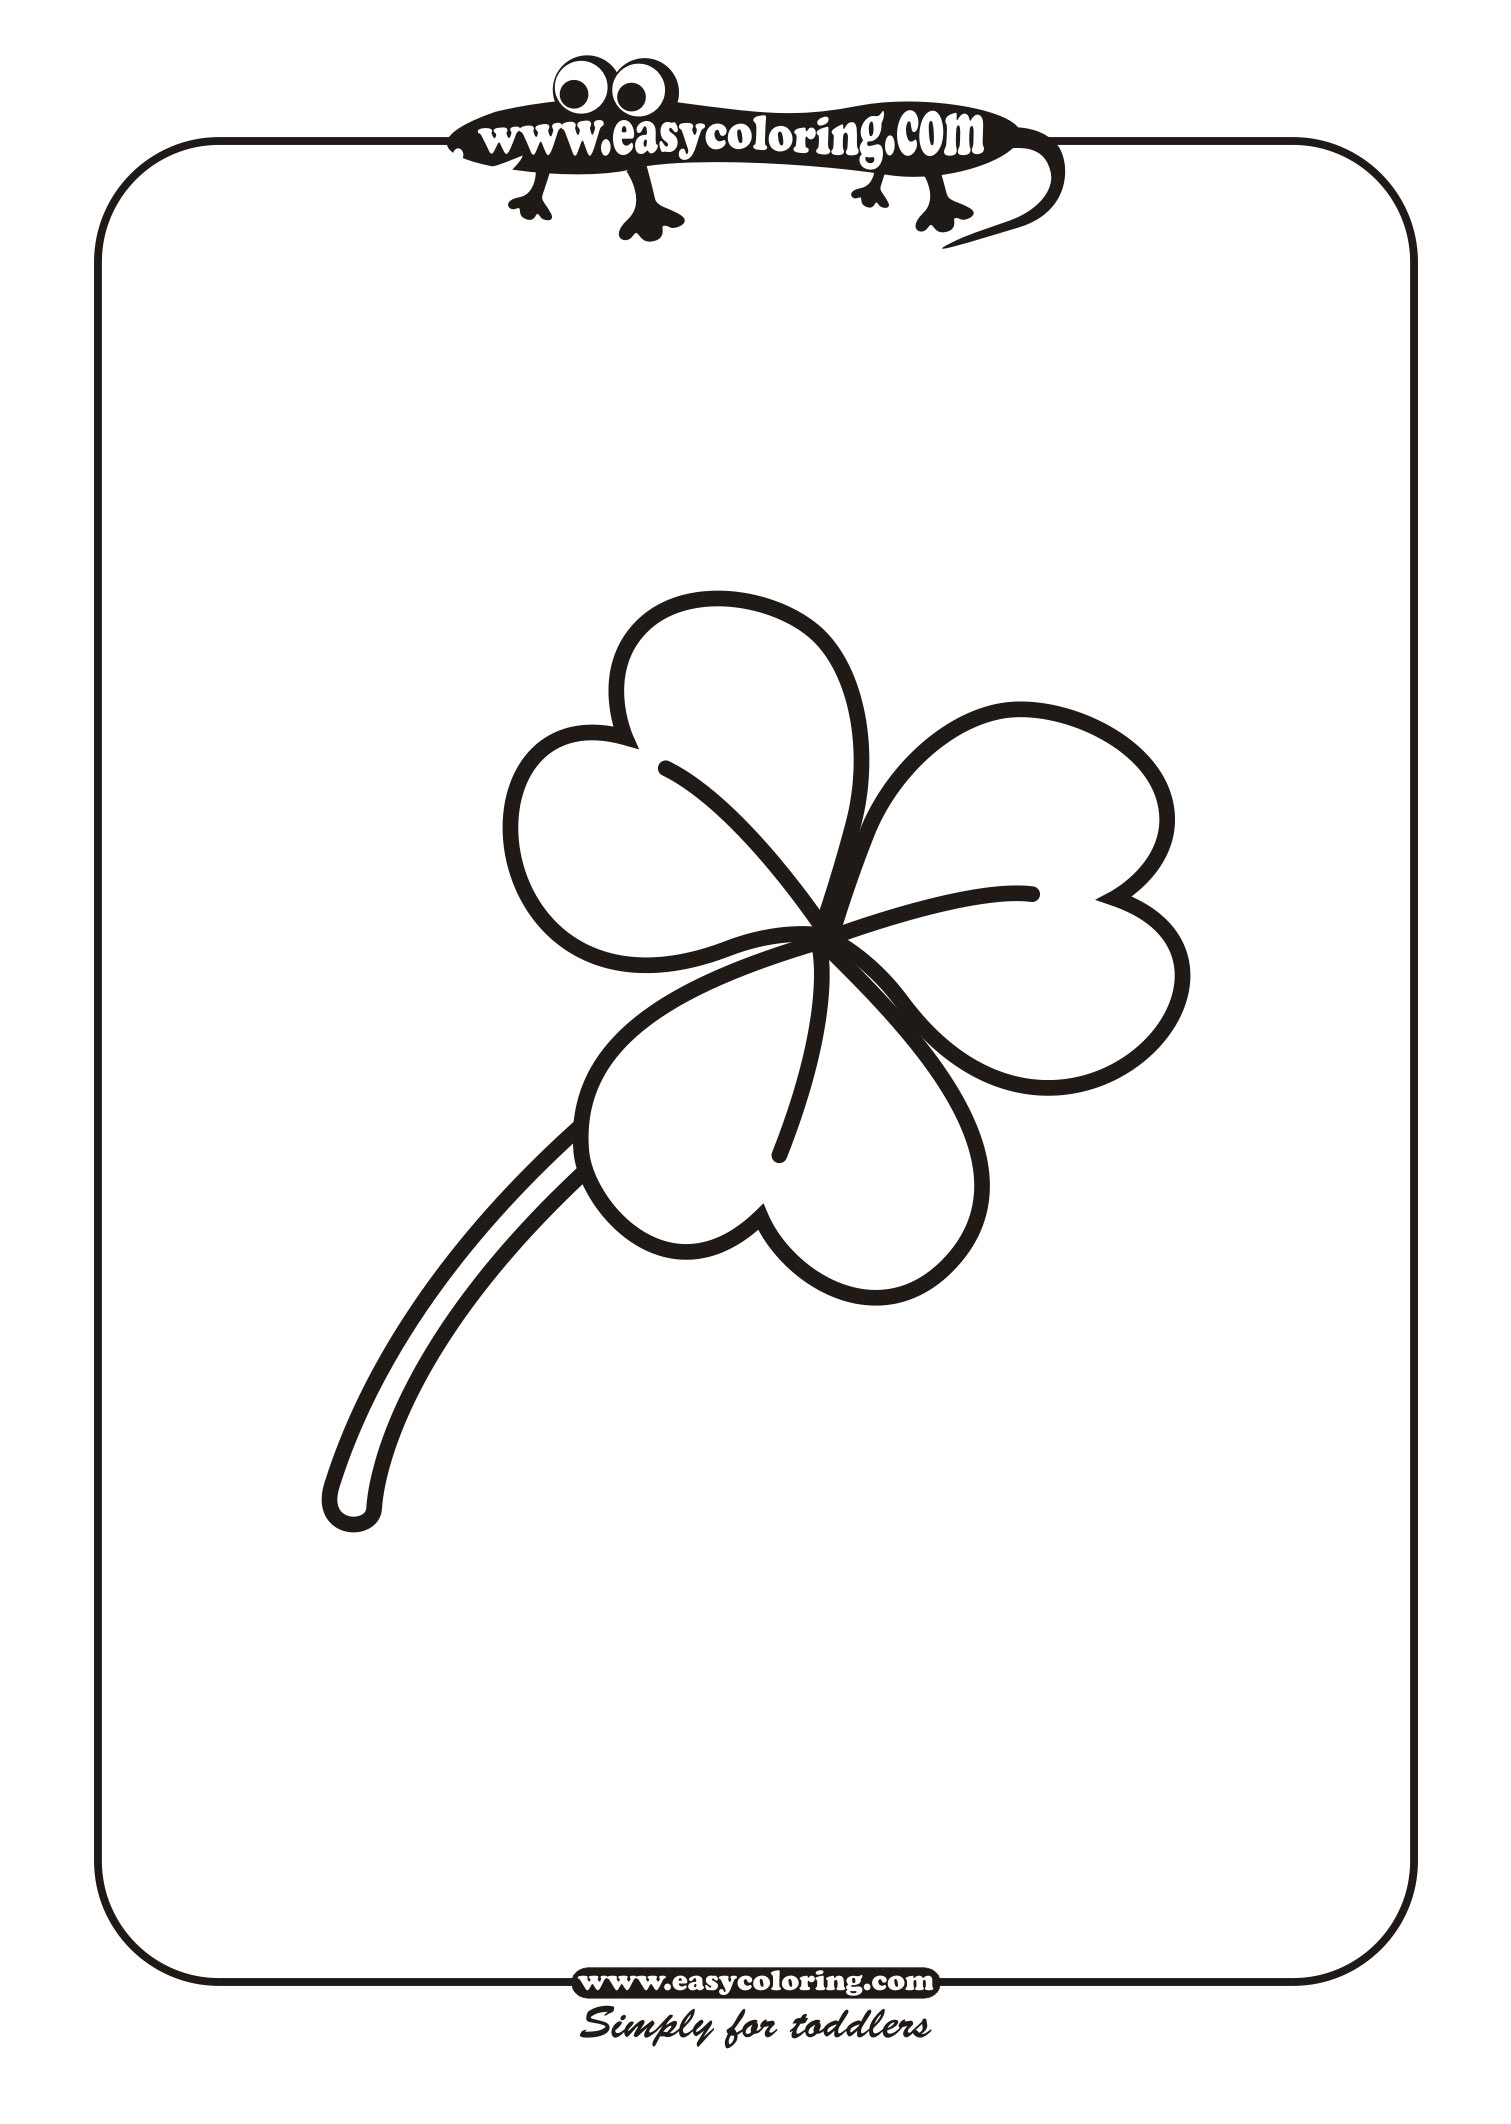 Leaf Four - Simple leafs | Easy coloring pages for toddlers